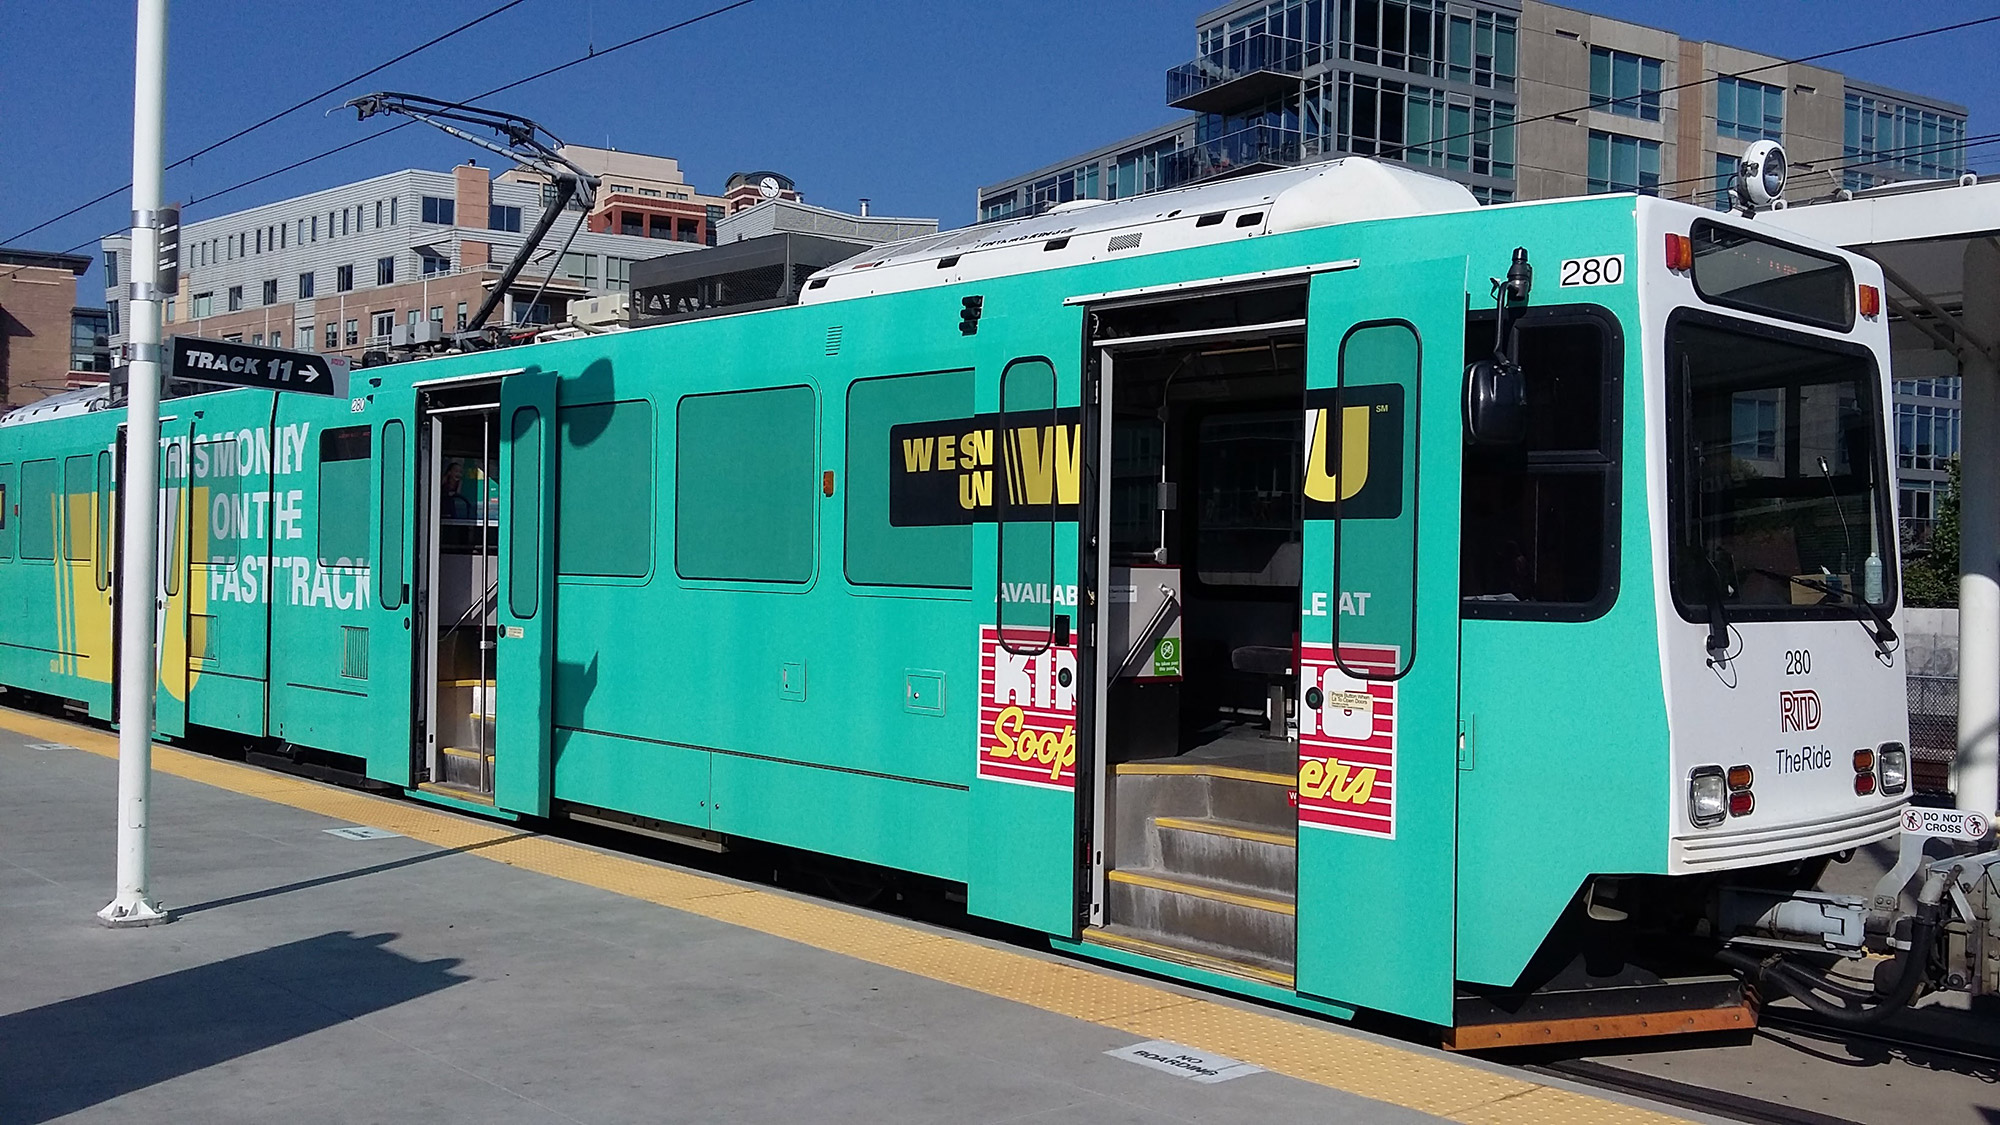 RTD light rail train covered in ads. Image courtesy of Wikimedia Commons (By Xnatedawgx)